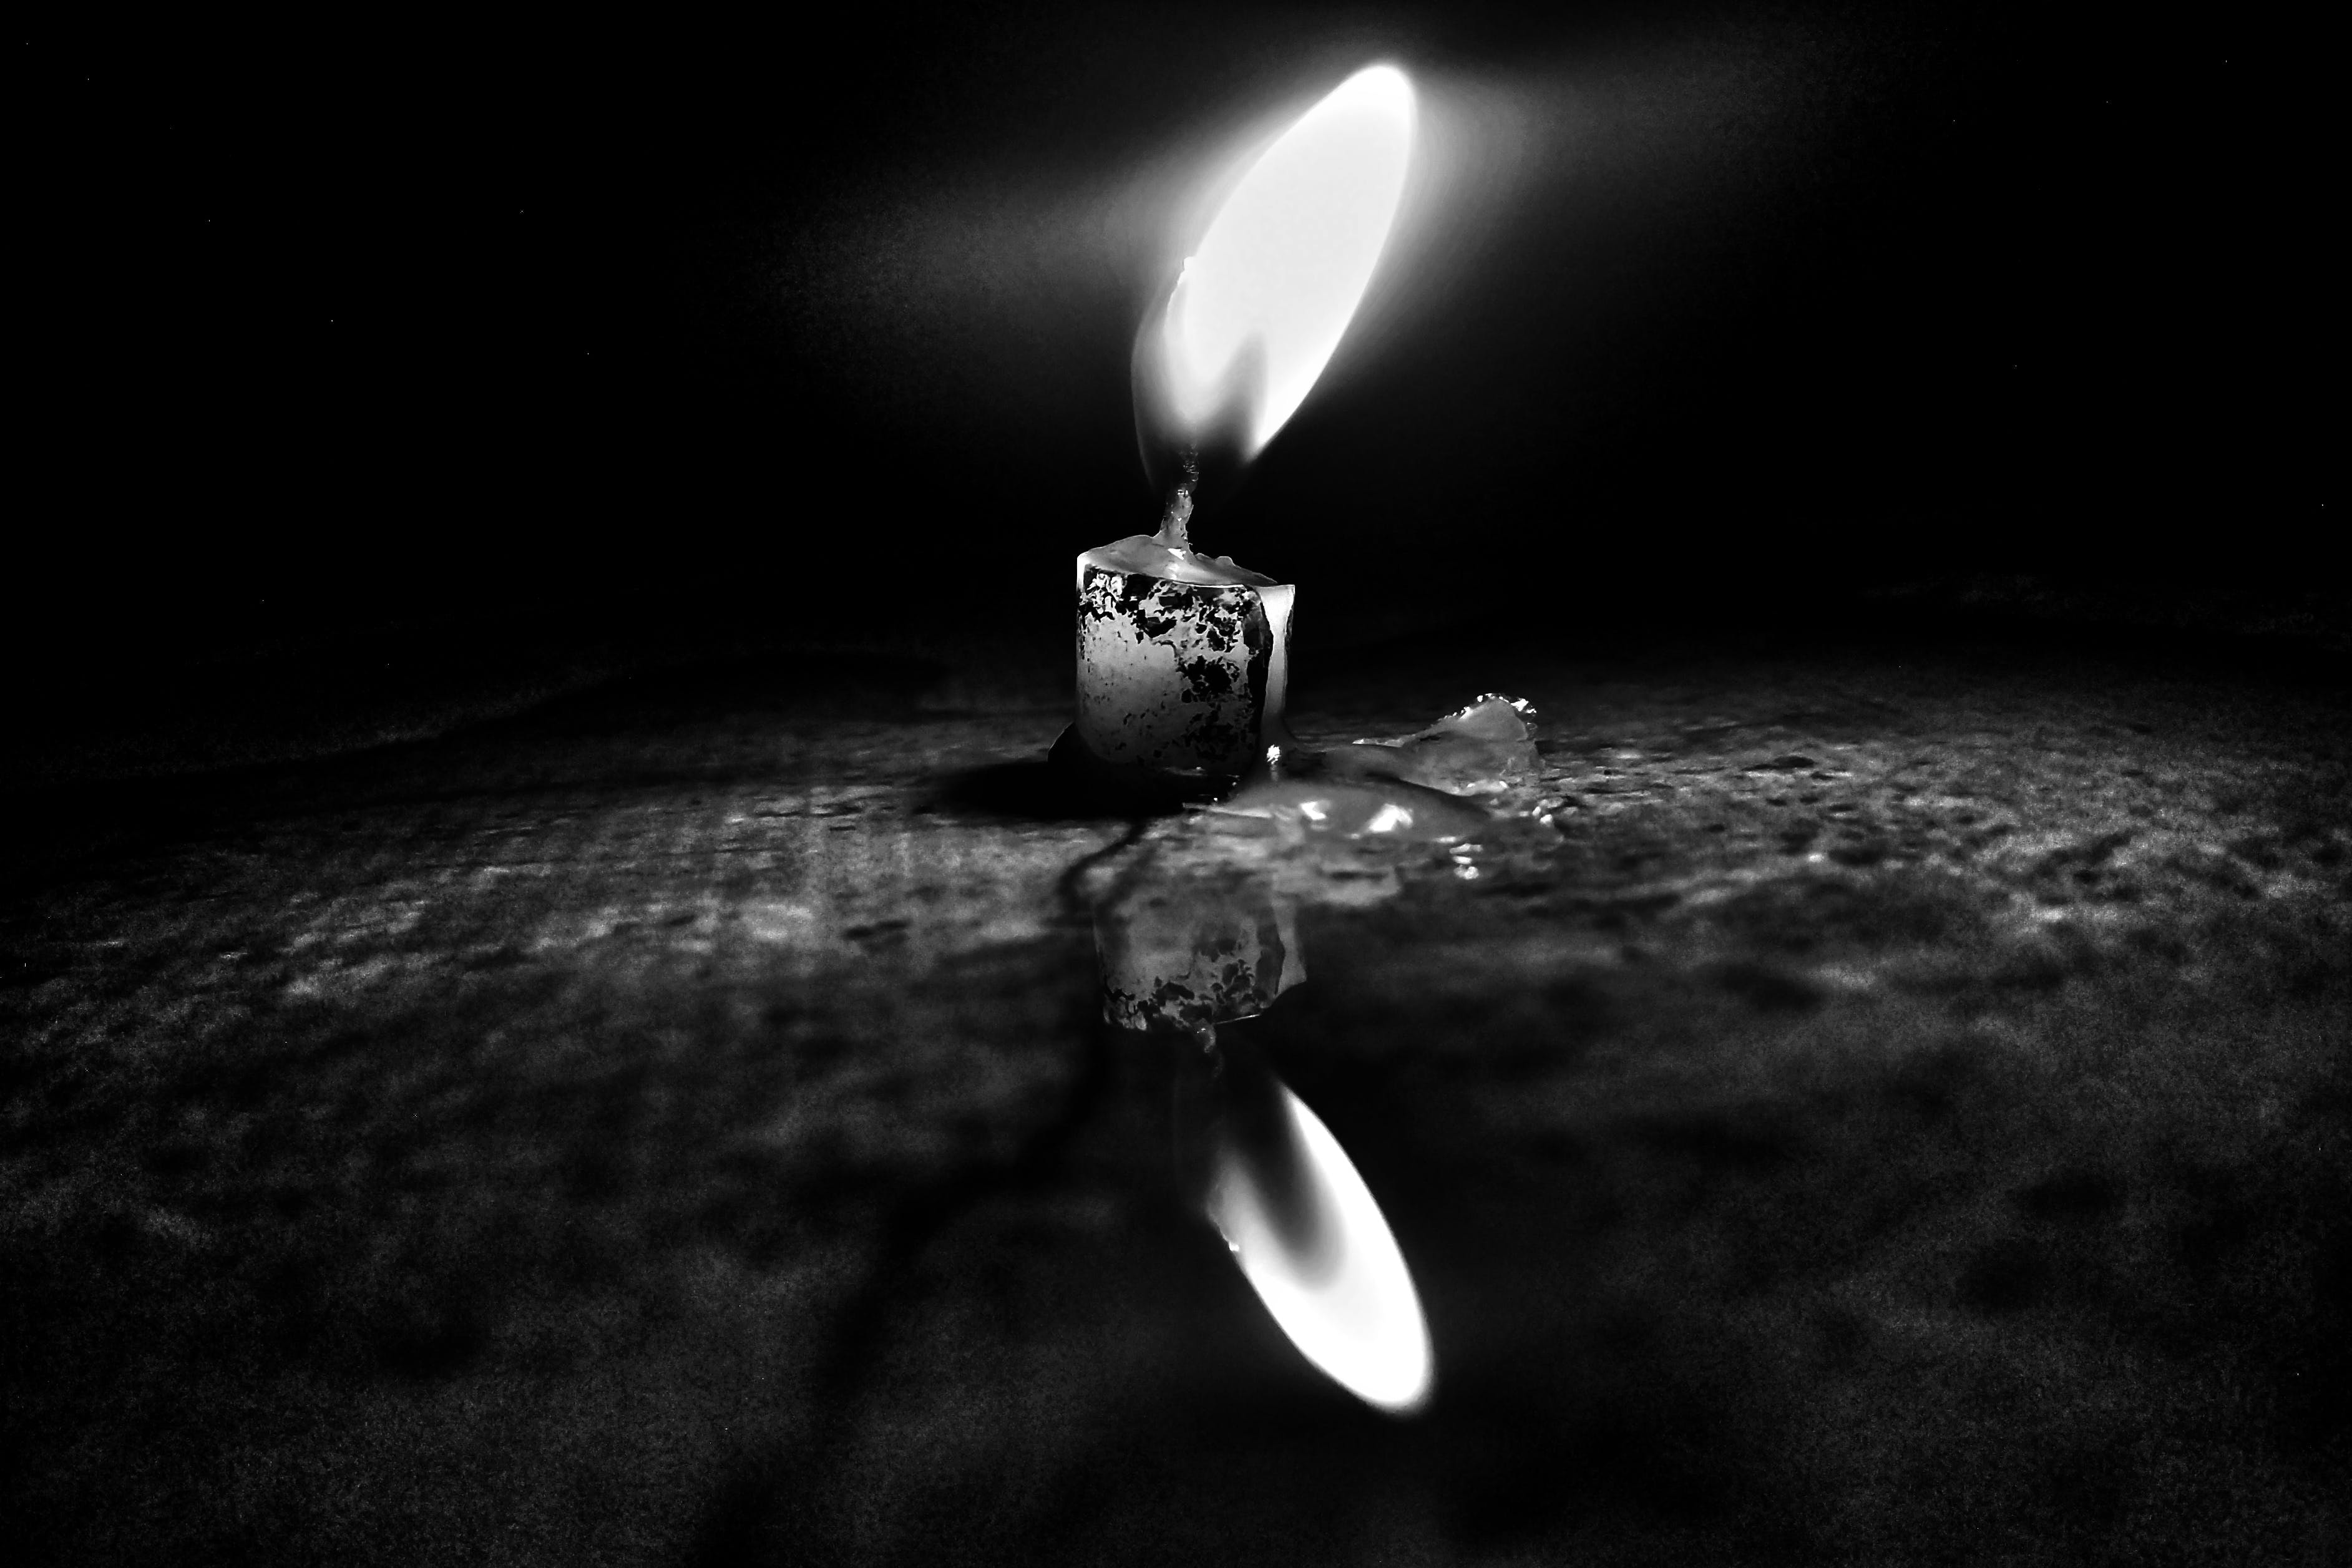 Free stock photo of black and white, black and-white, black background, candle